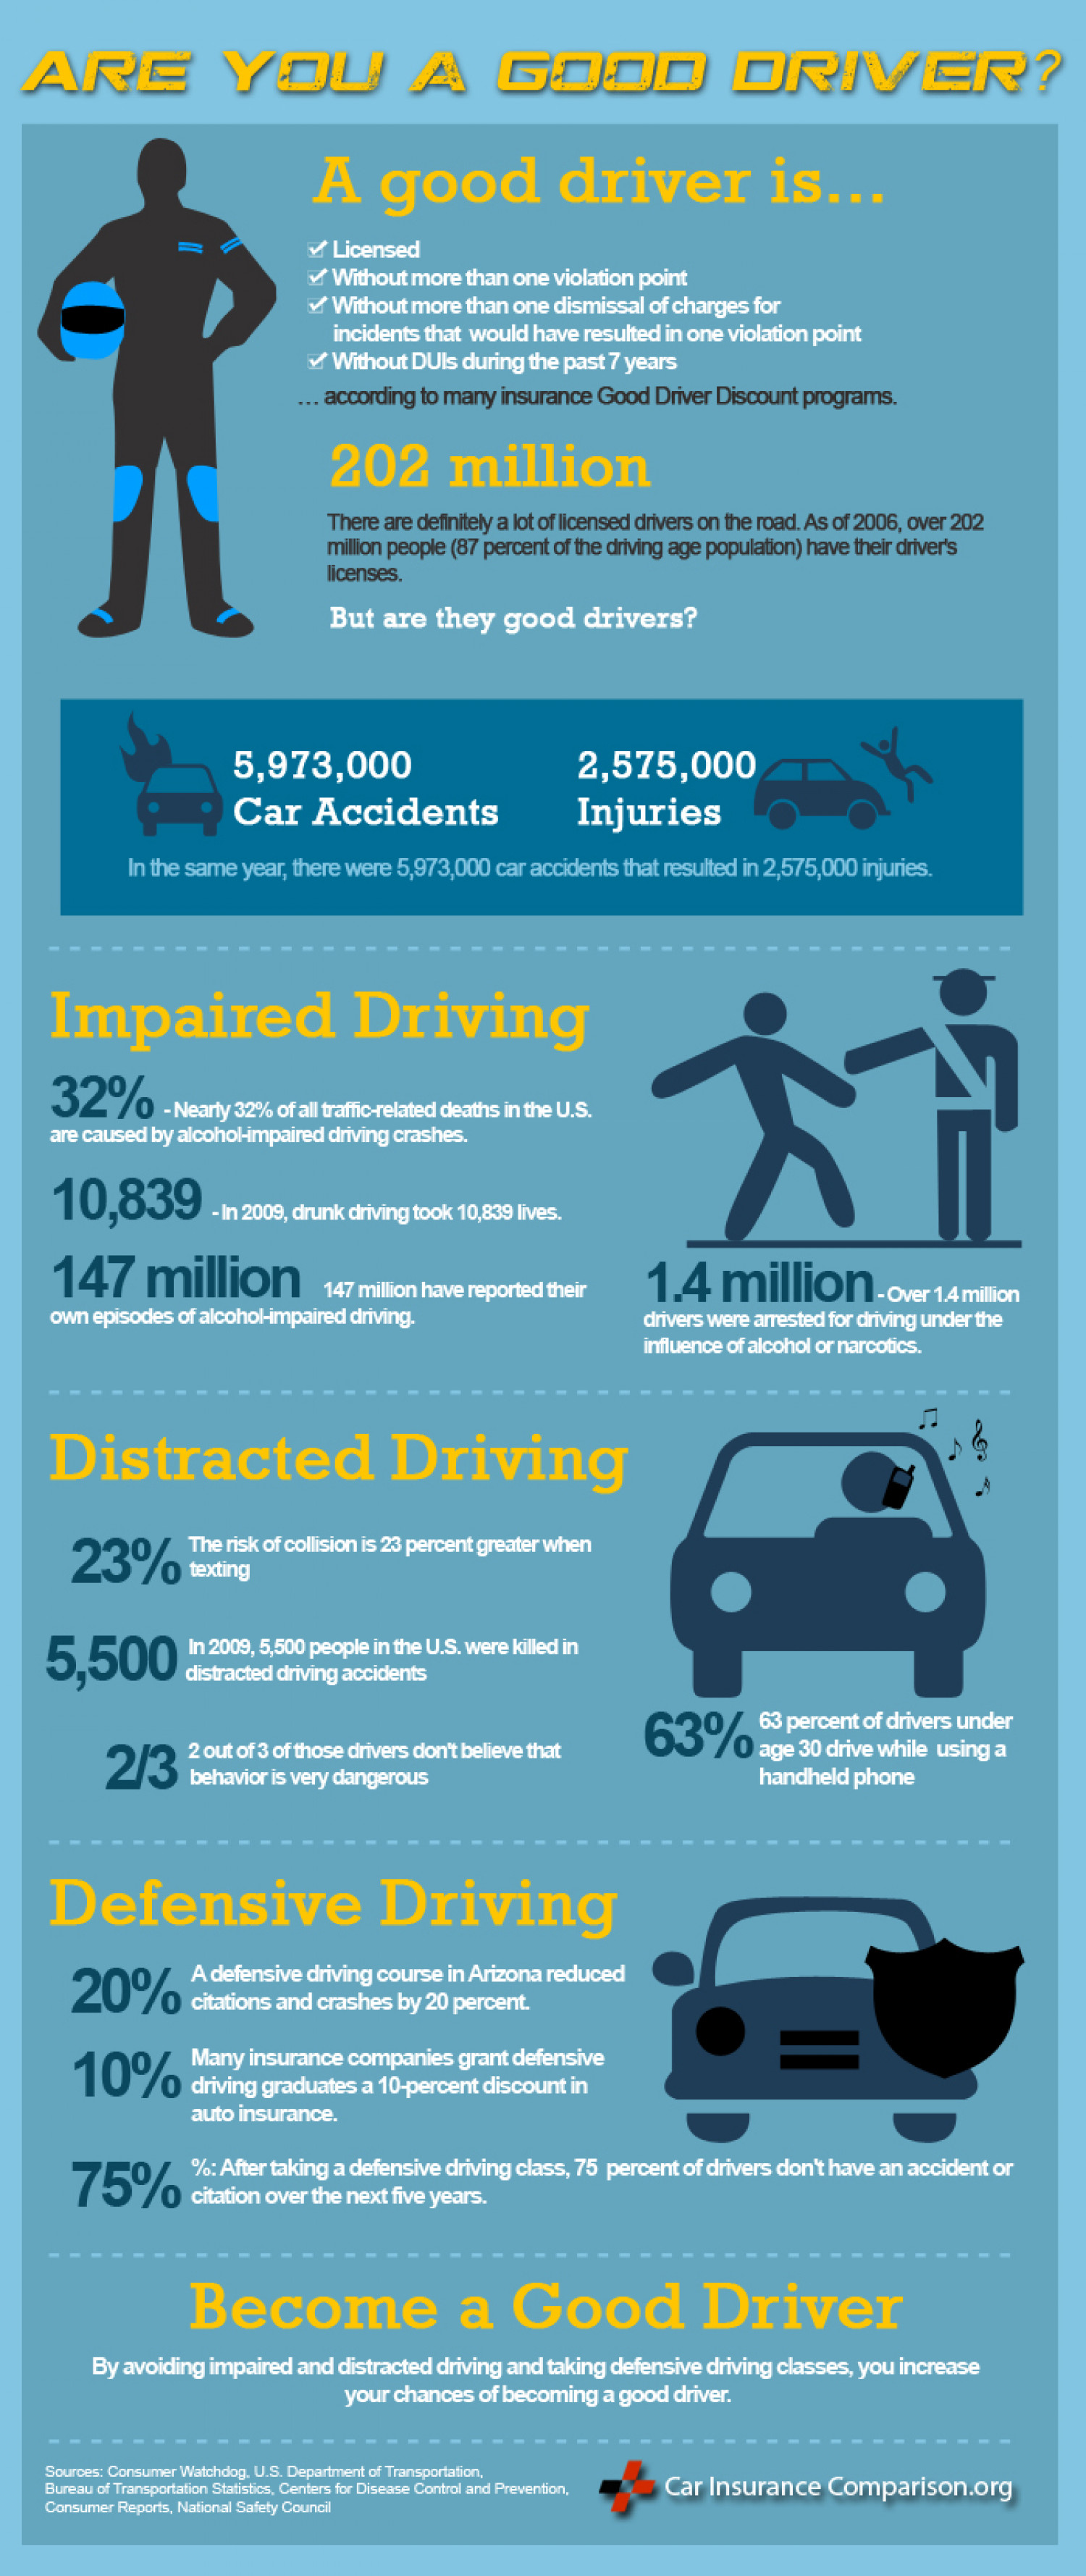 Are You a Good Driver? Infographic